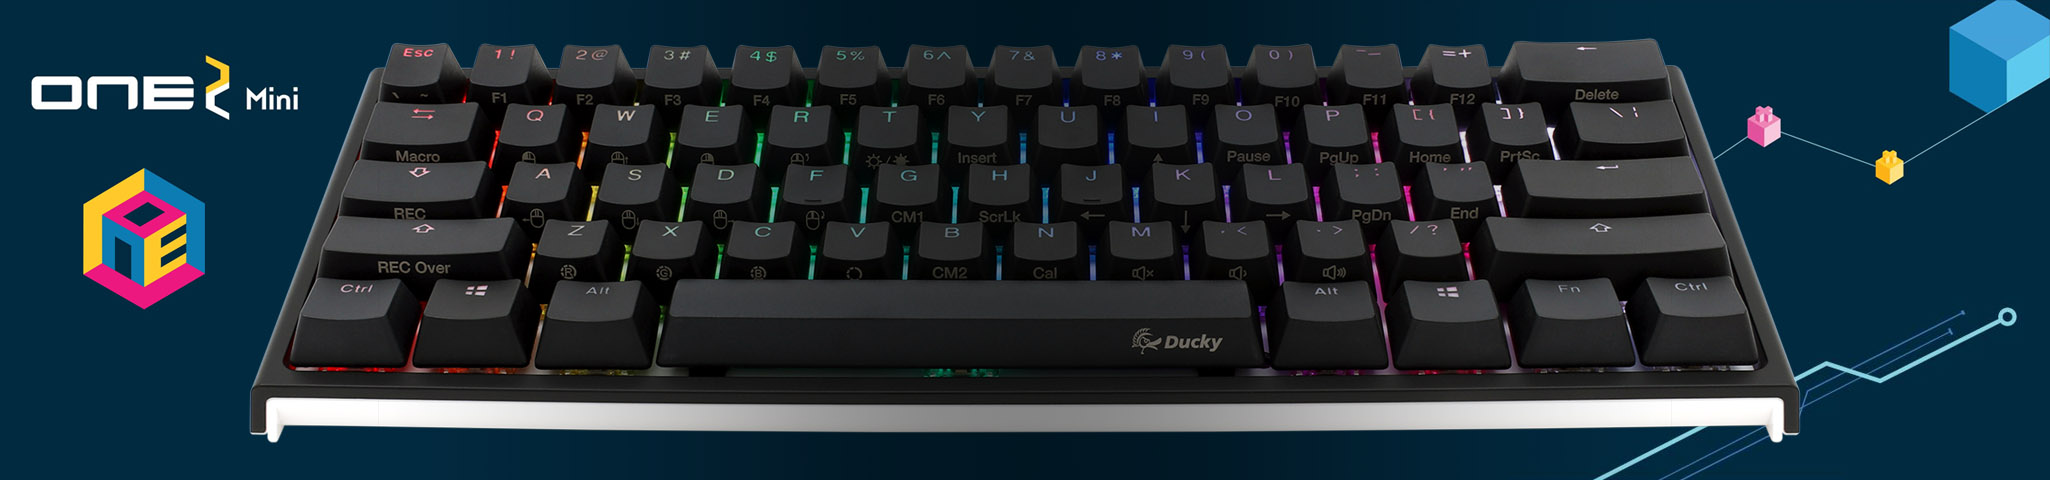 Mechanical Keyboards Inc - The Ultimate Catalog and Guide